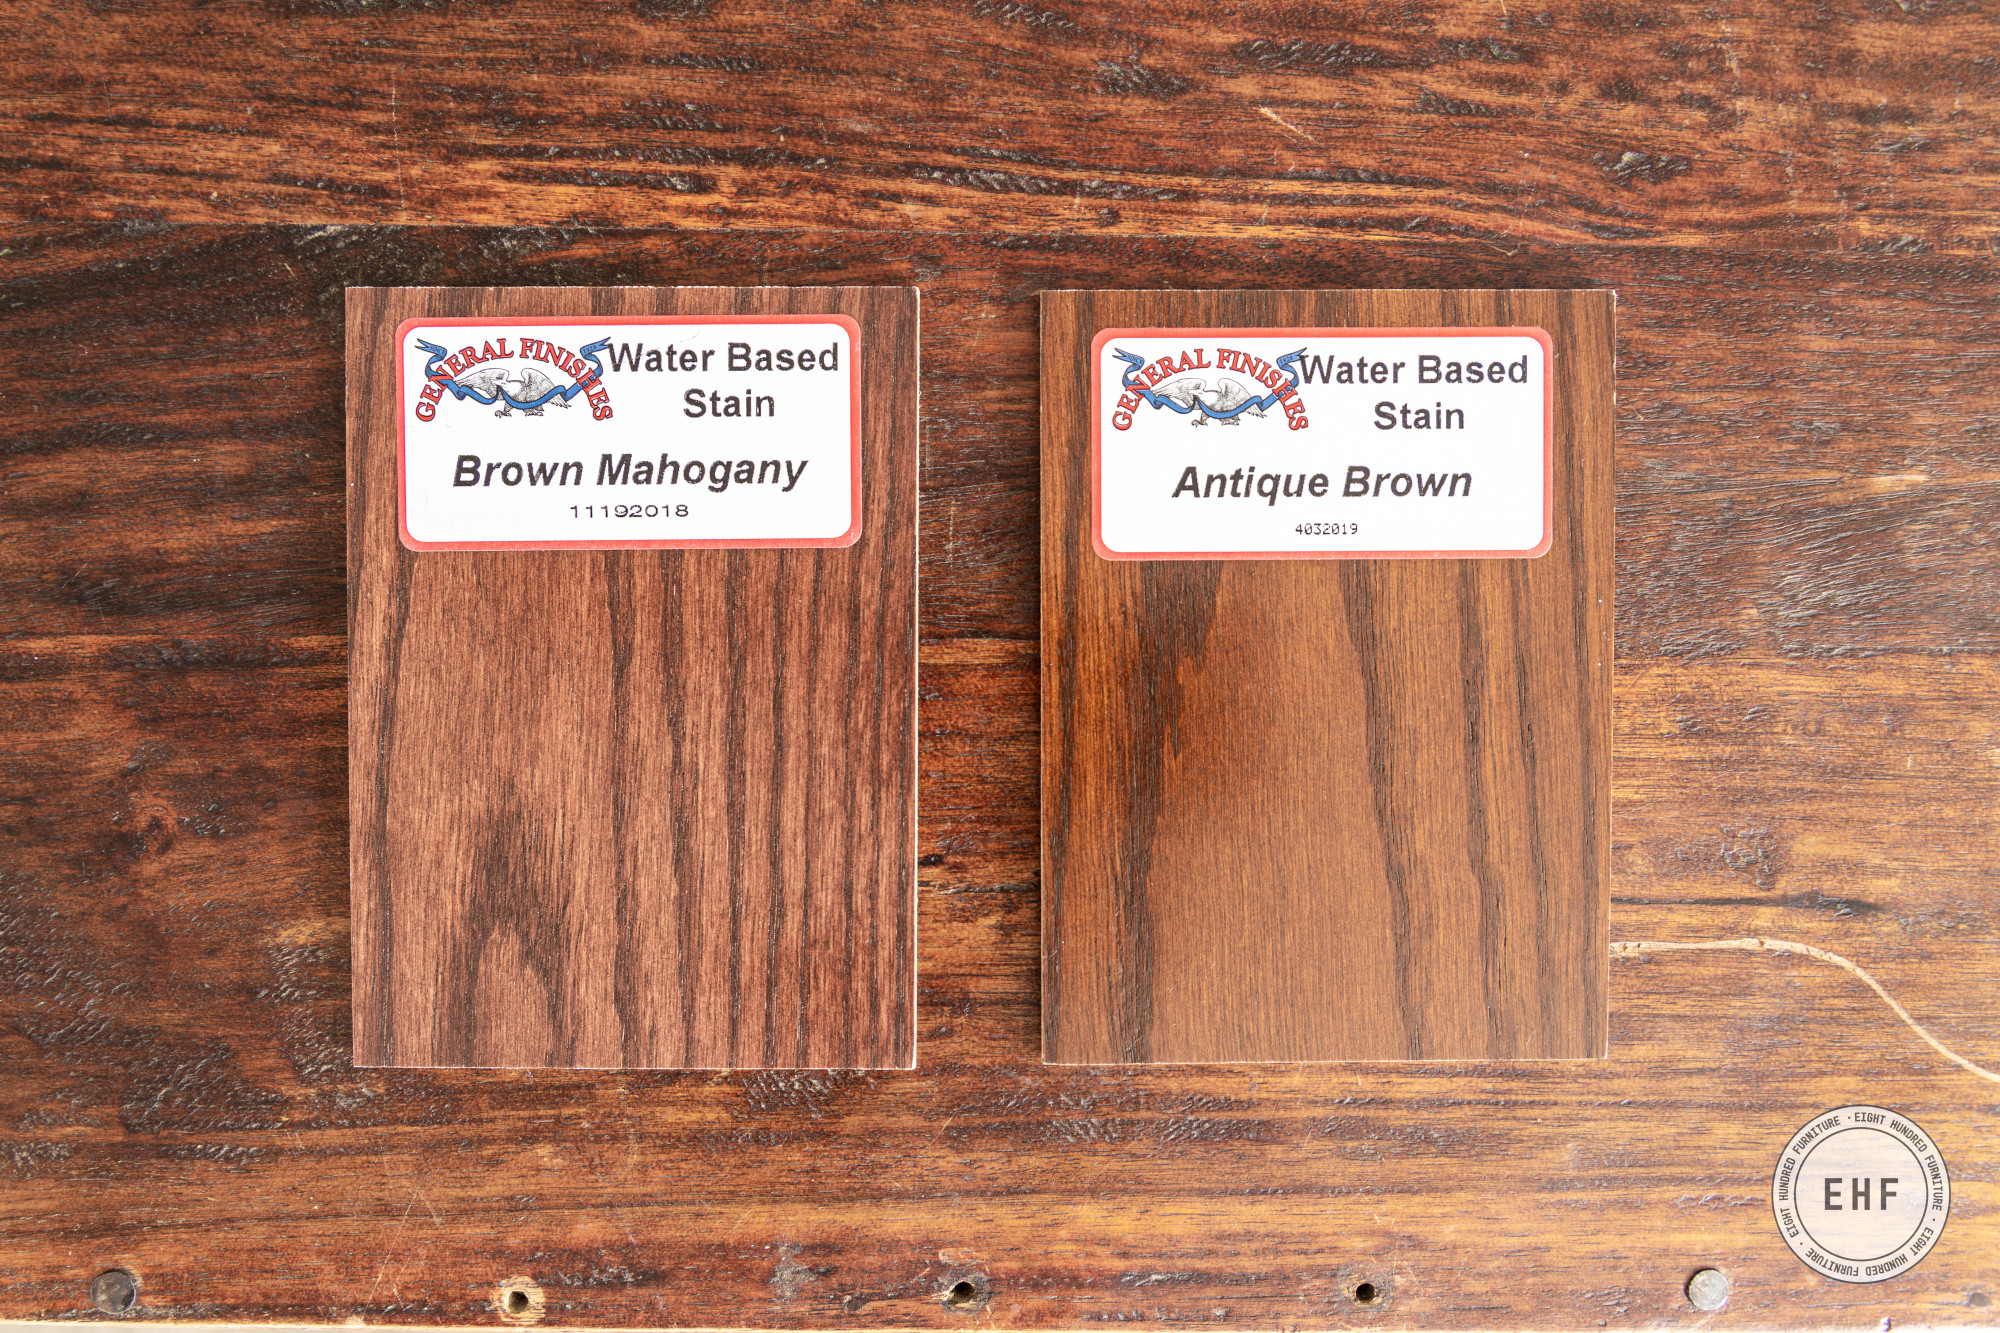 Brown Mahogany and Antique Brown Wood Stain by General Finishes